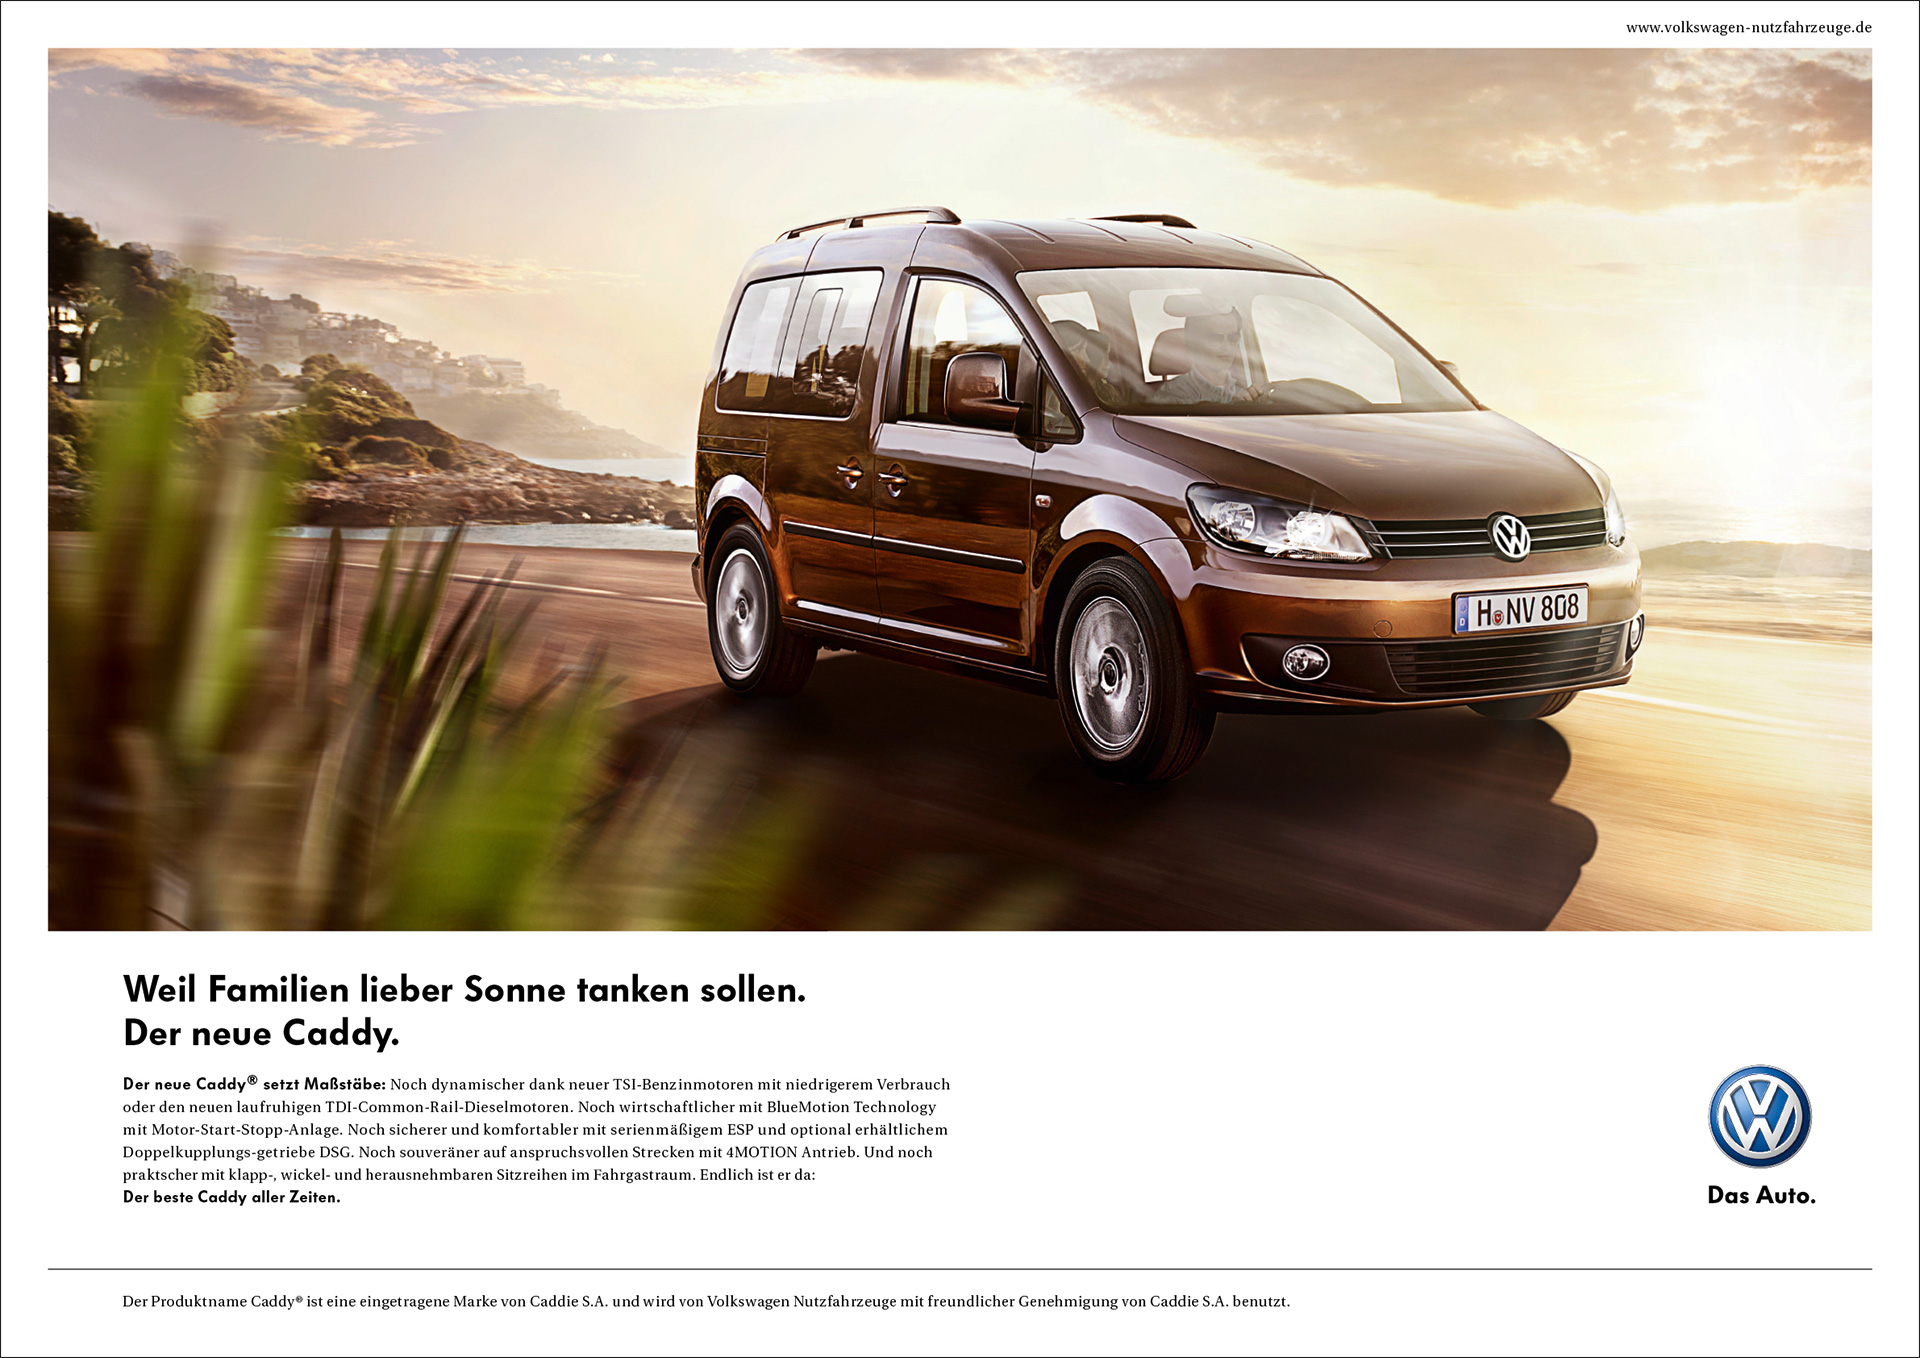 Kerstin_Correll_VW_Caddy_2